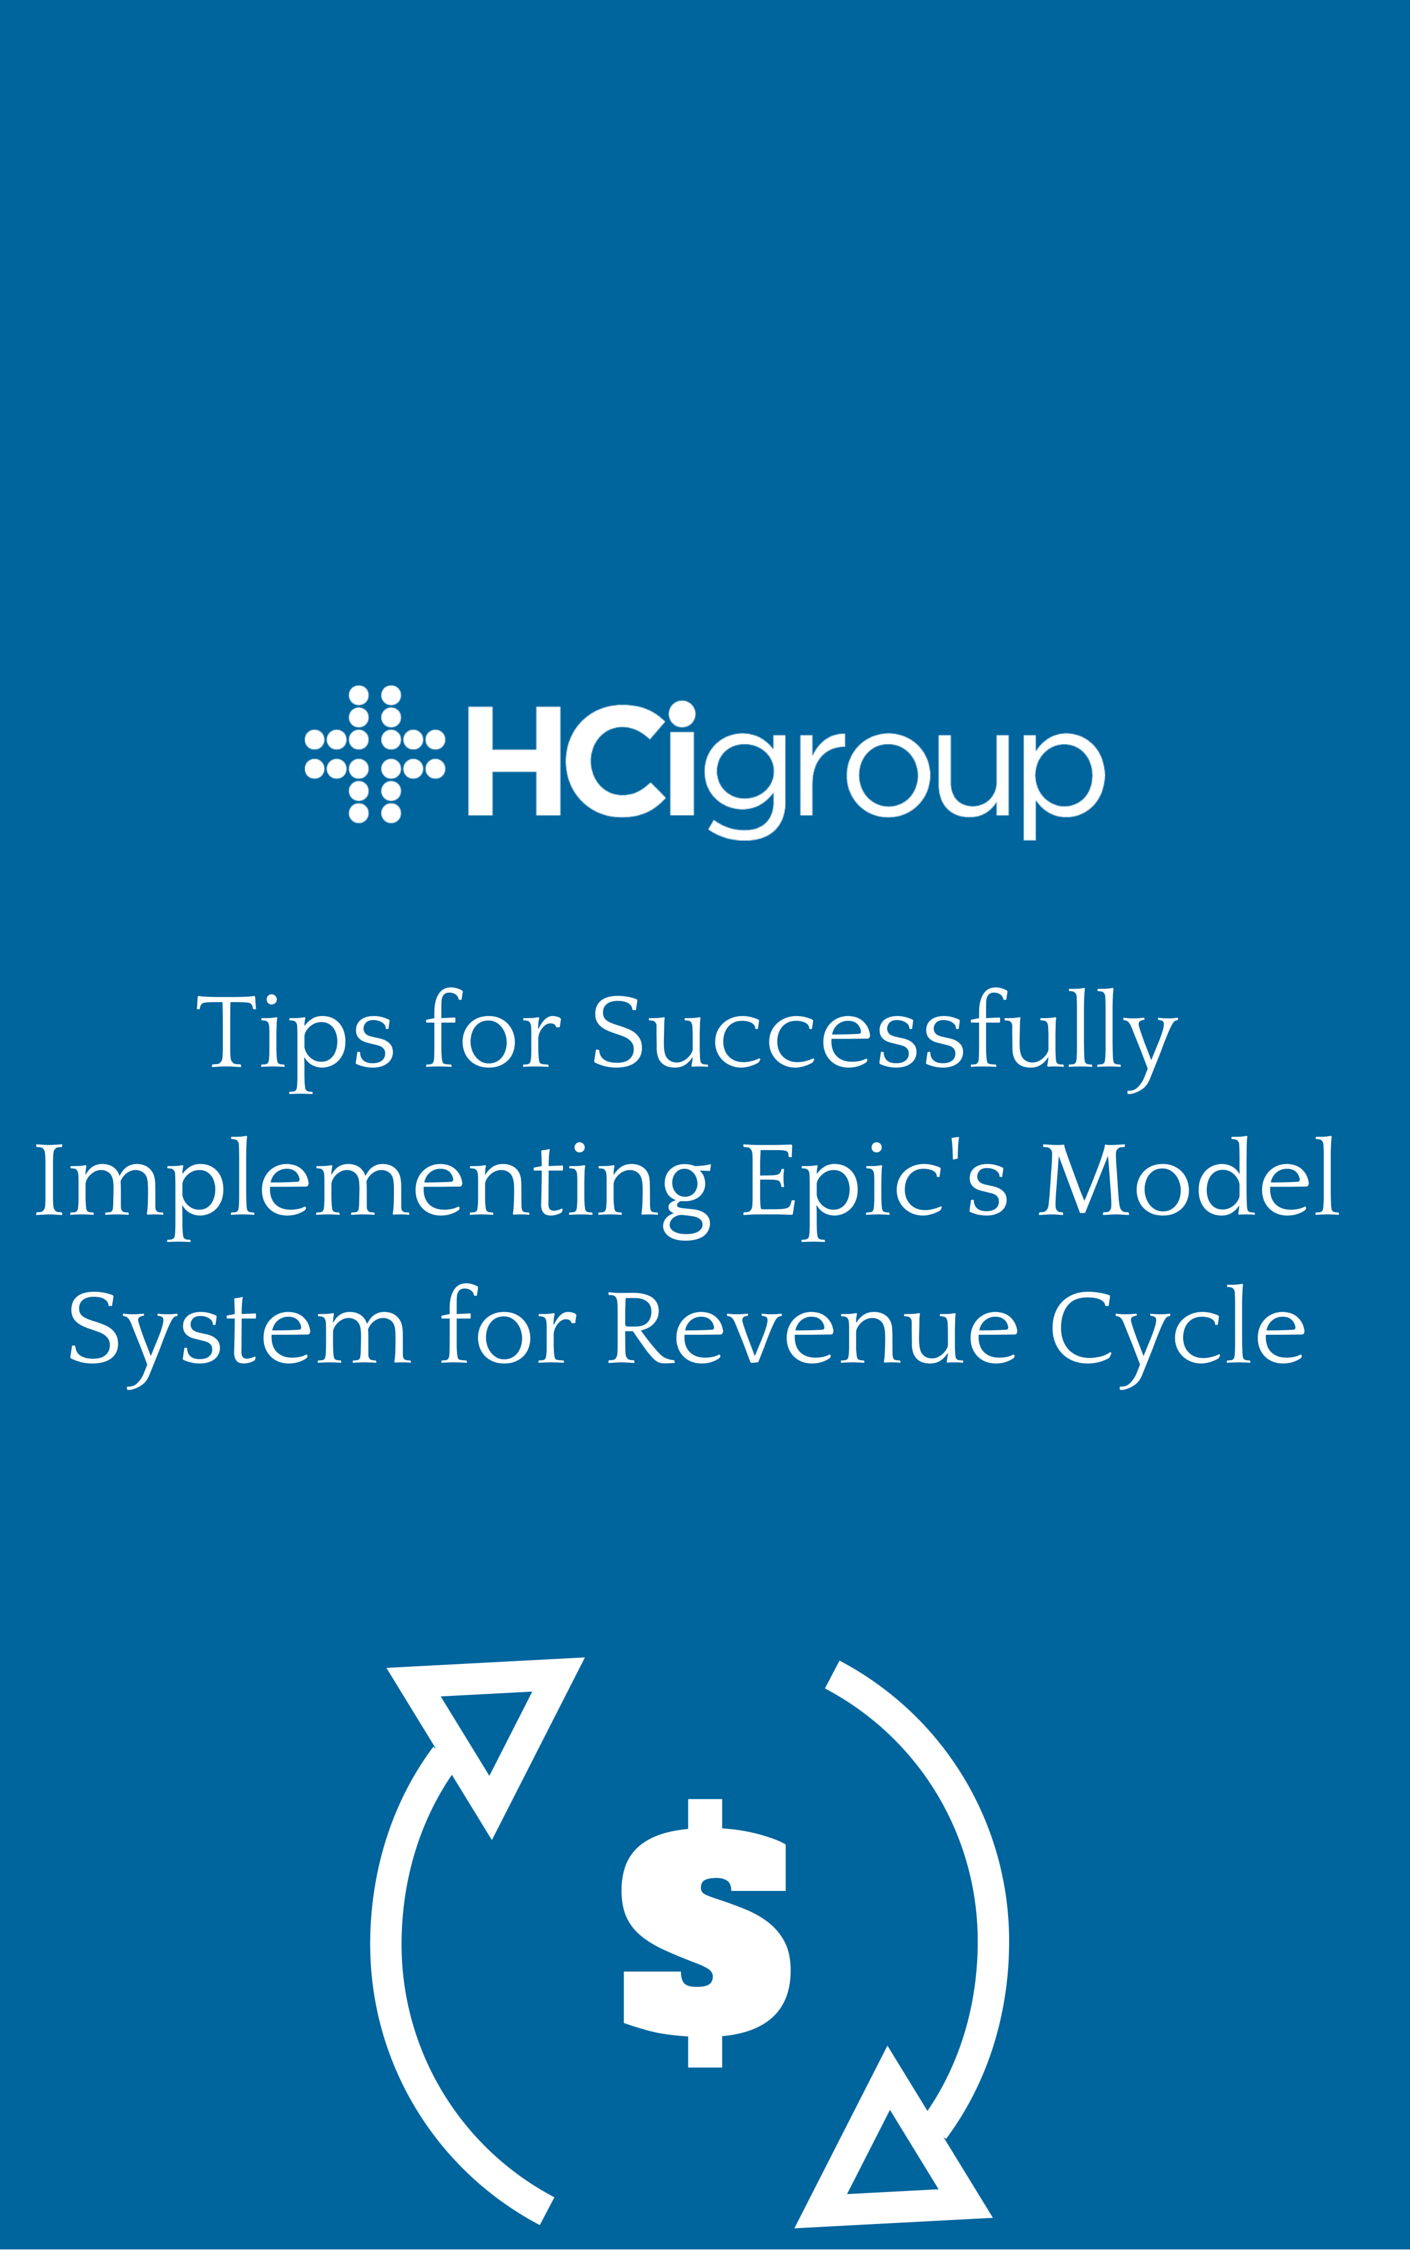 Download Tips for Successfully Implementing Epic's Model System for Revenue Cycle